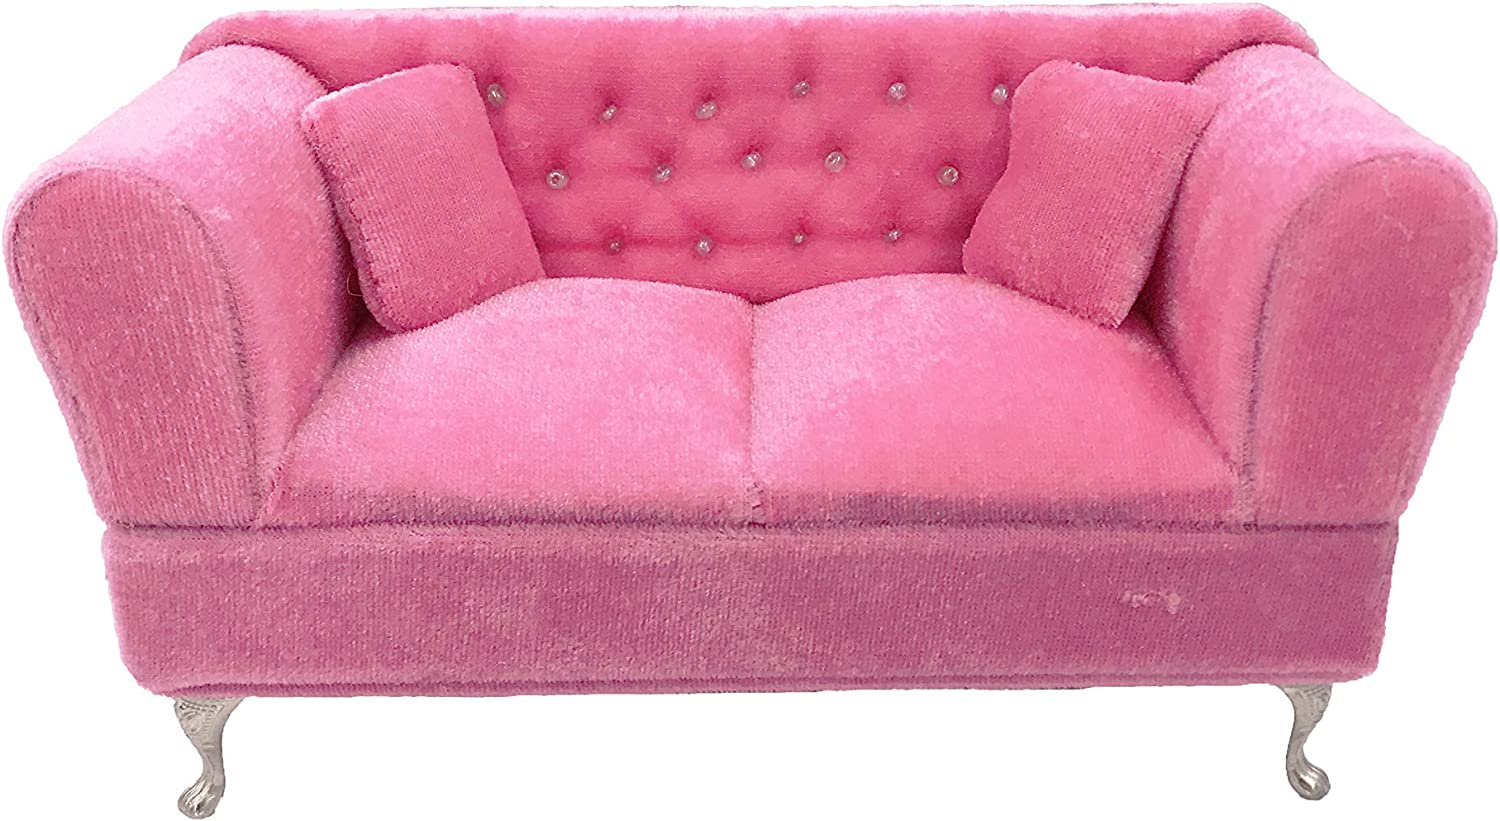 Rose Pink Jewelry Storage Organizer Flip Open Compartments Birthday Gift for Her Twenis 1//6 Dollhouse Fancy Couch Sofa